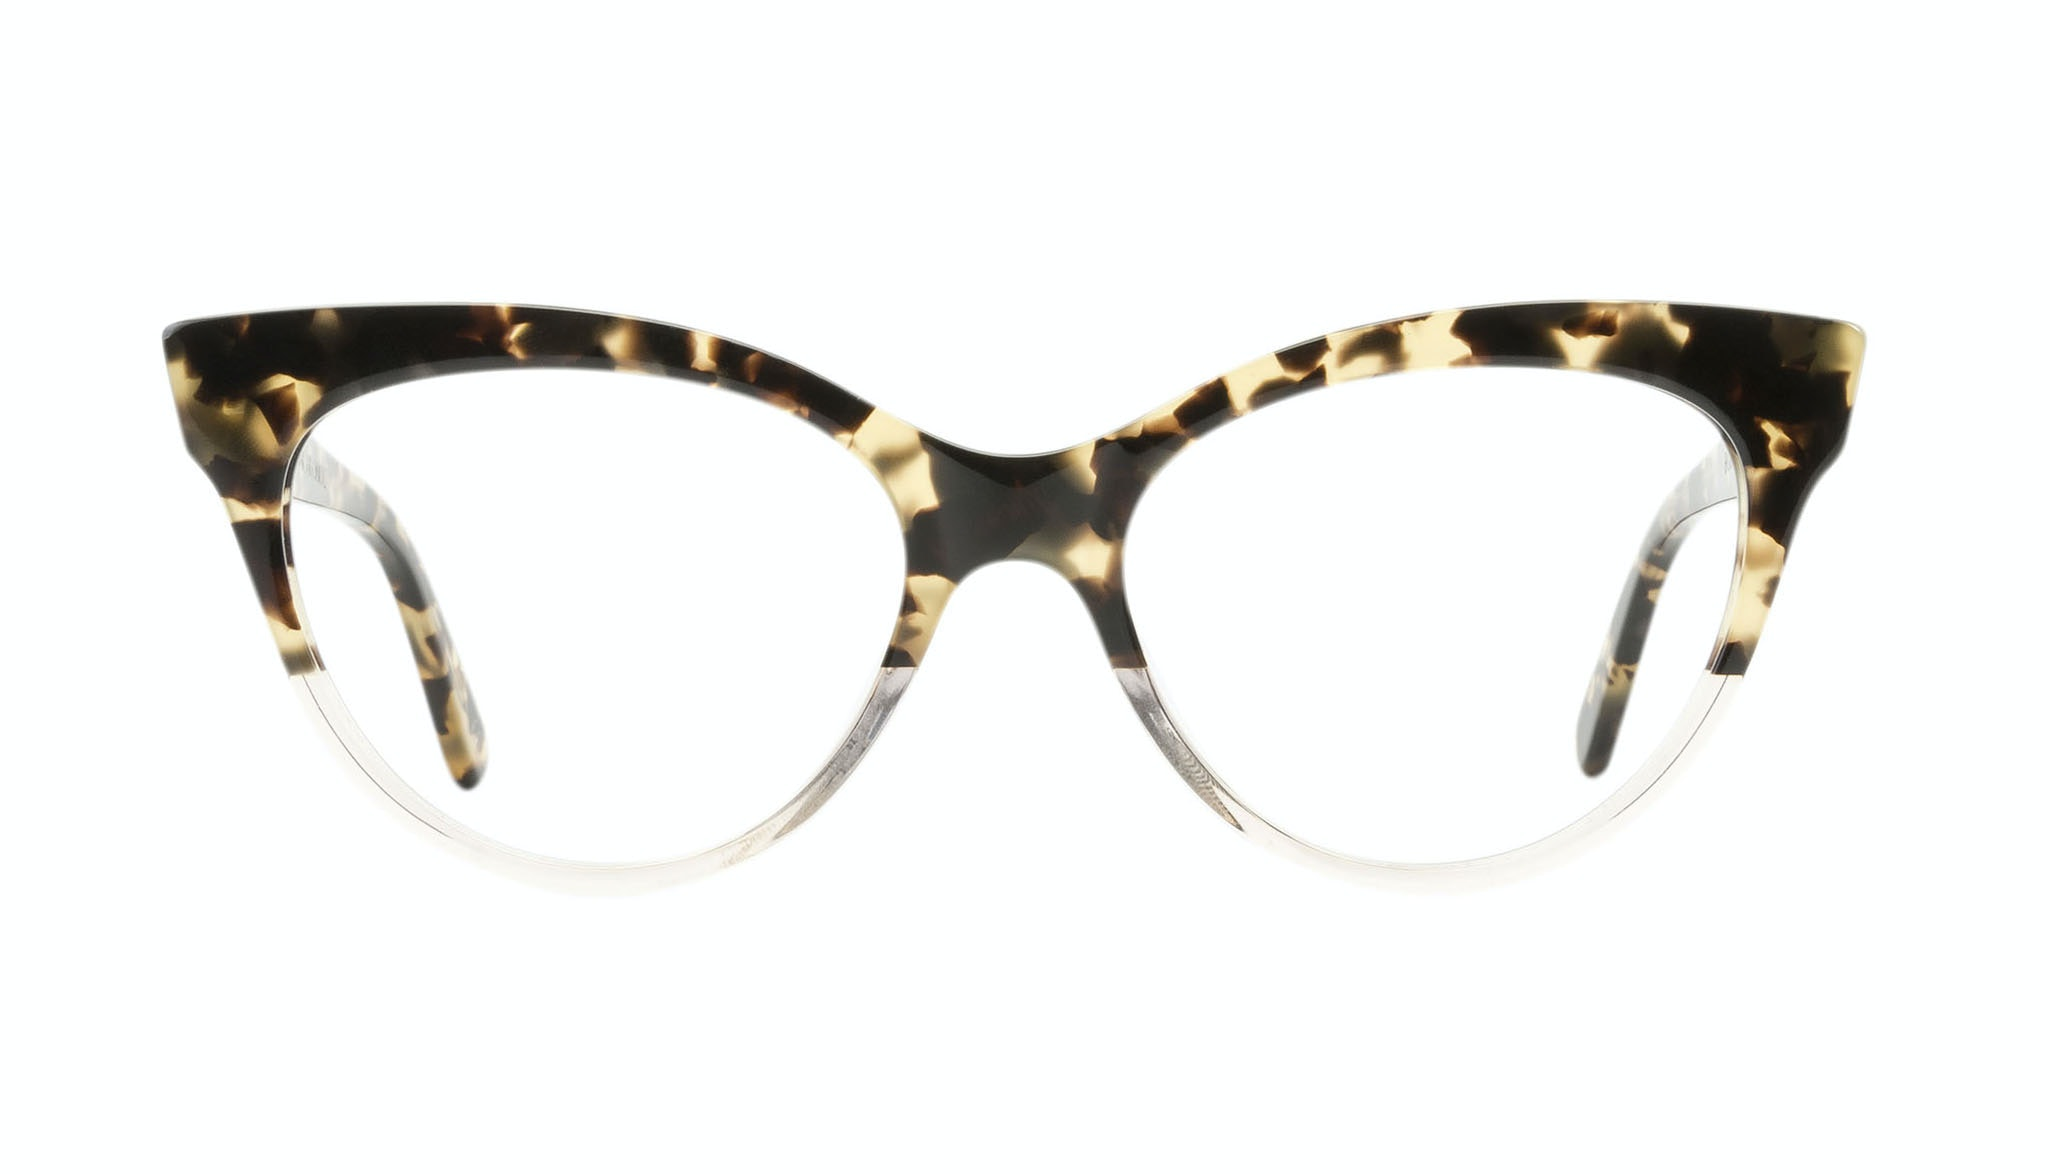 Affordable Fashion Glasses Cat Eye Daring Cateye Eyeglasses Women SkunkBoy Champagne Tort Front